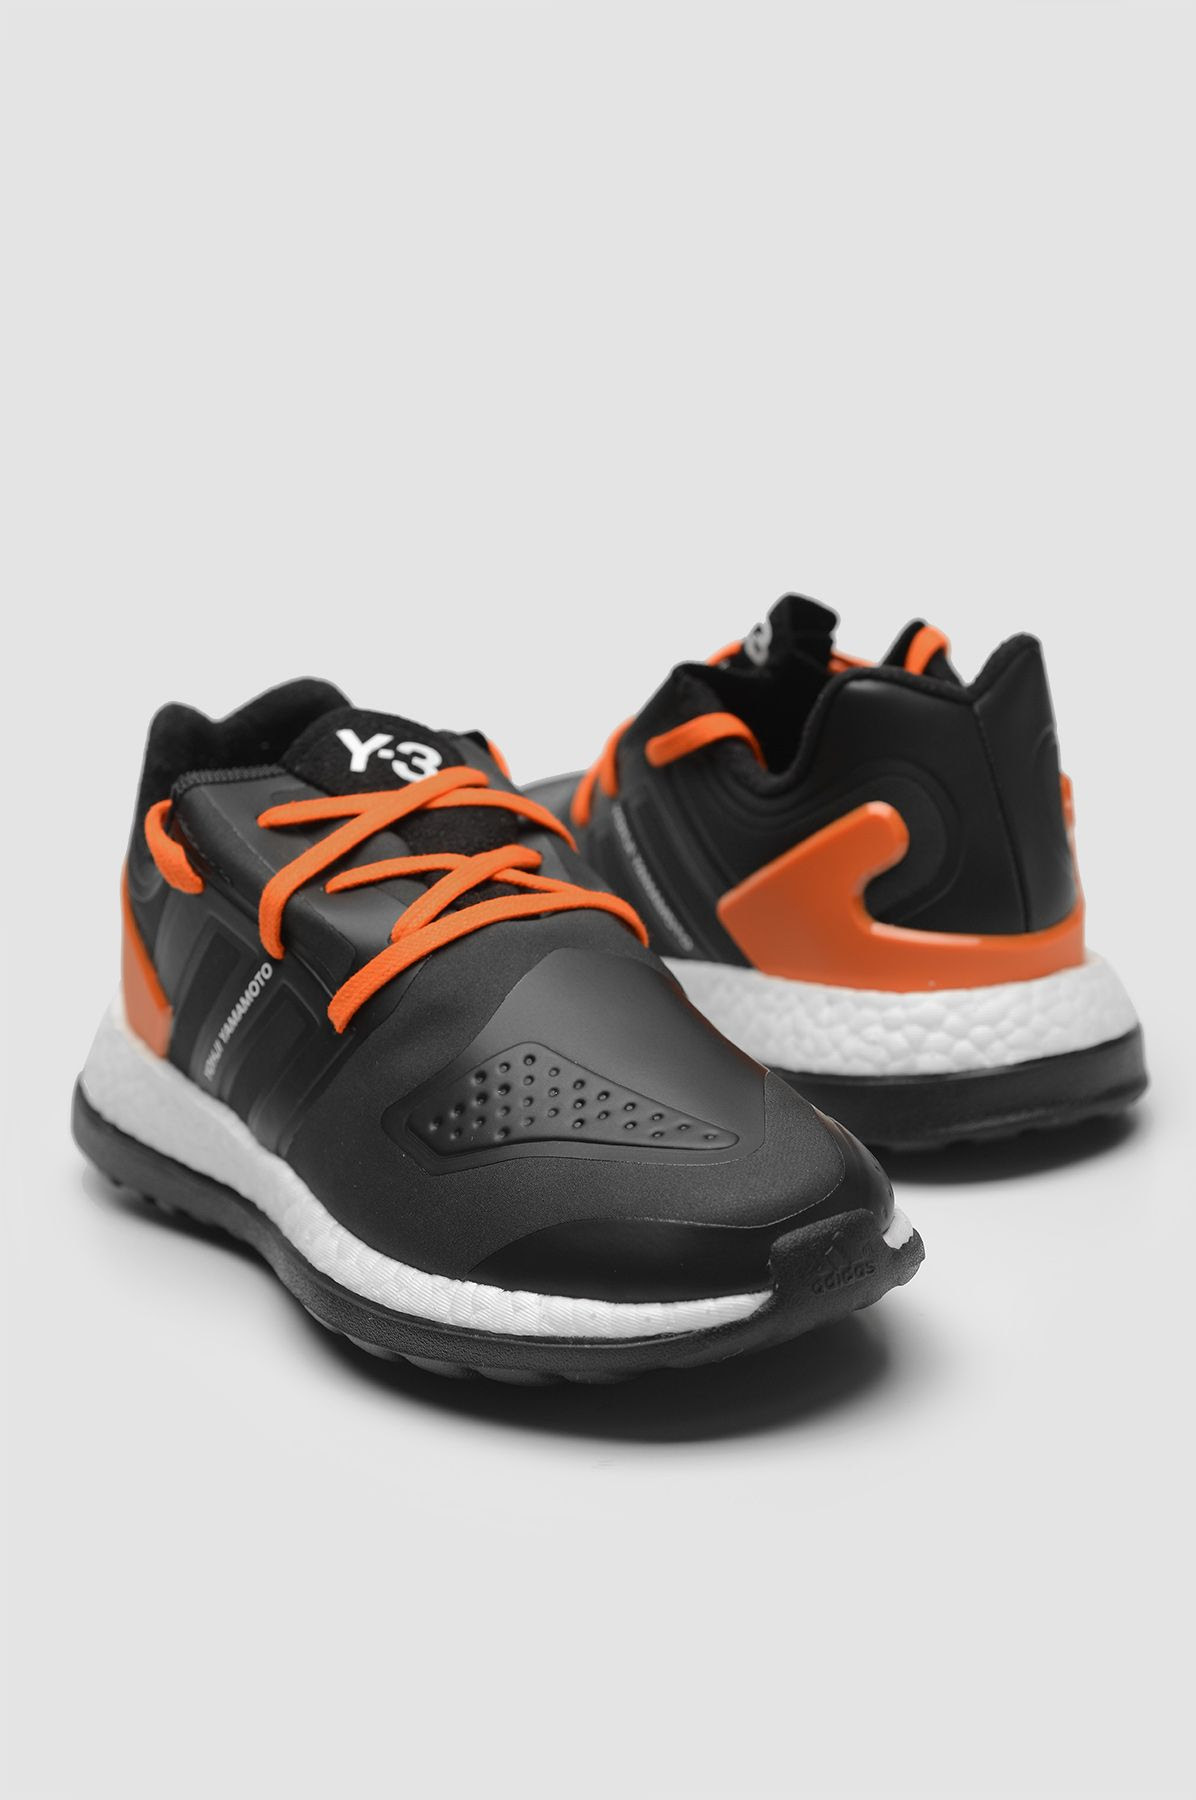 y3-pure-boost-zg-black-orange-2